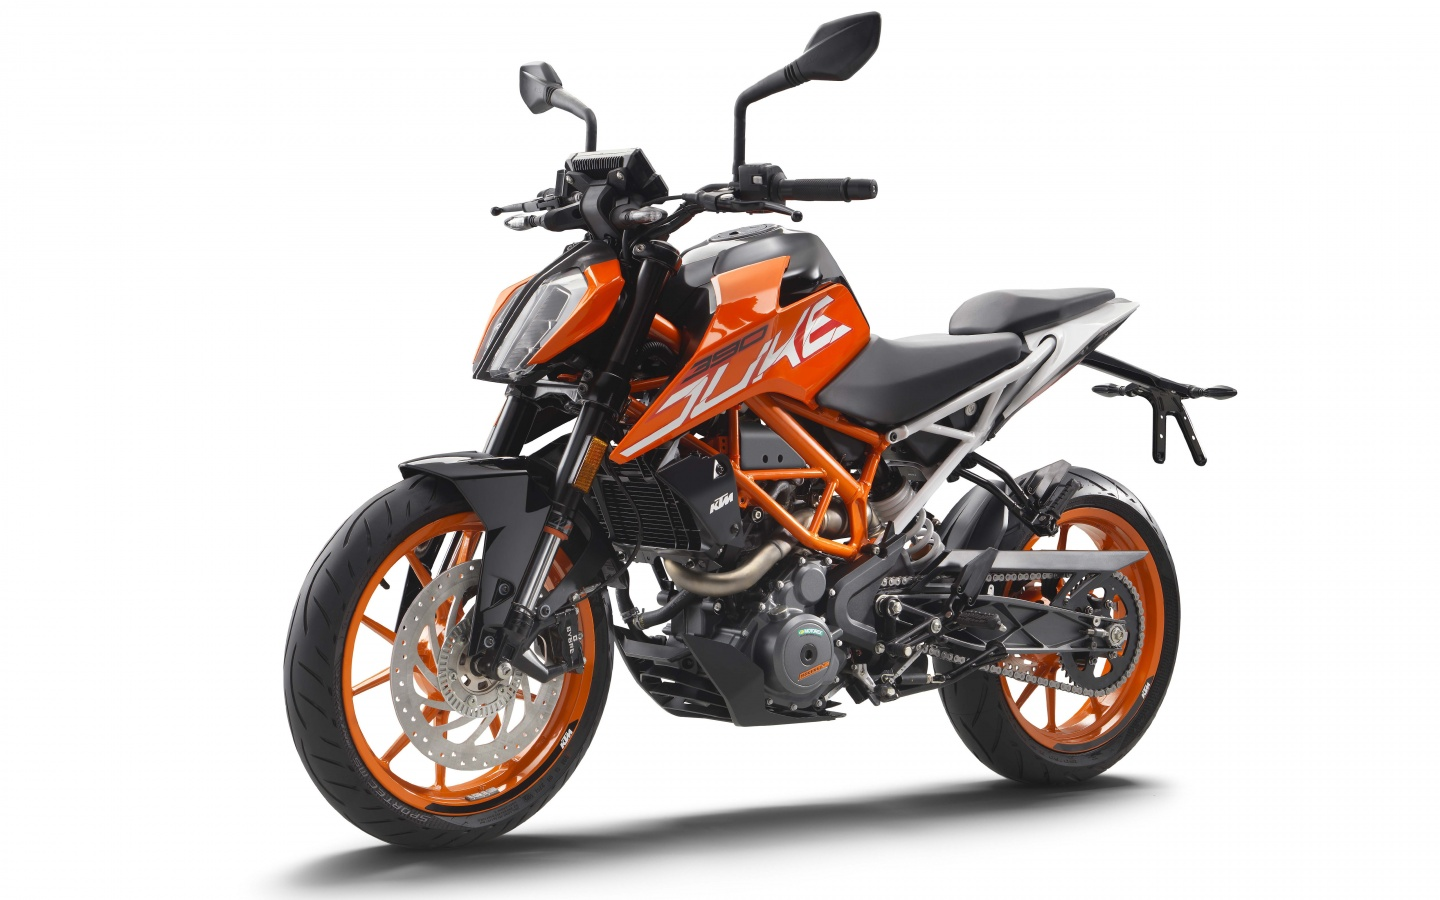 KTM 390 Duke Motorcycles 2017